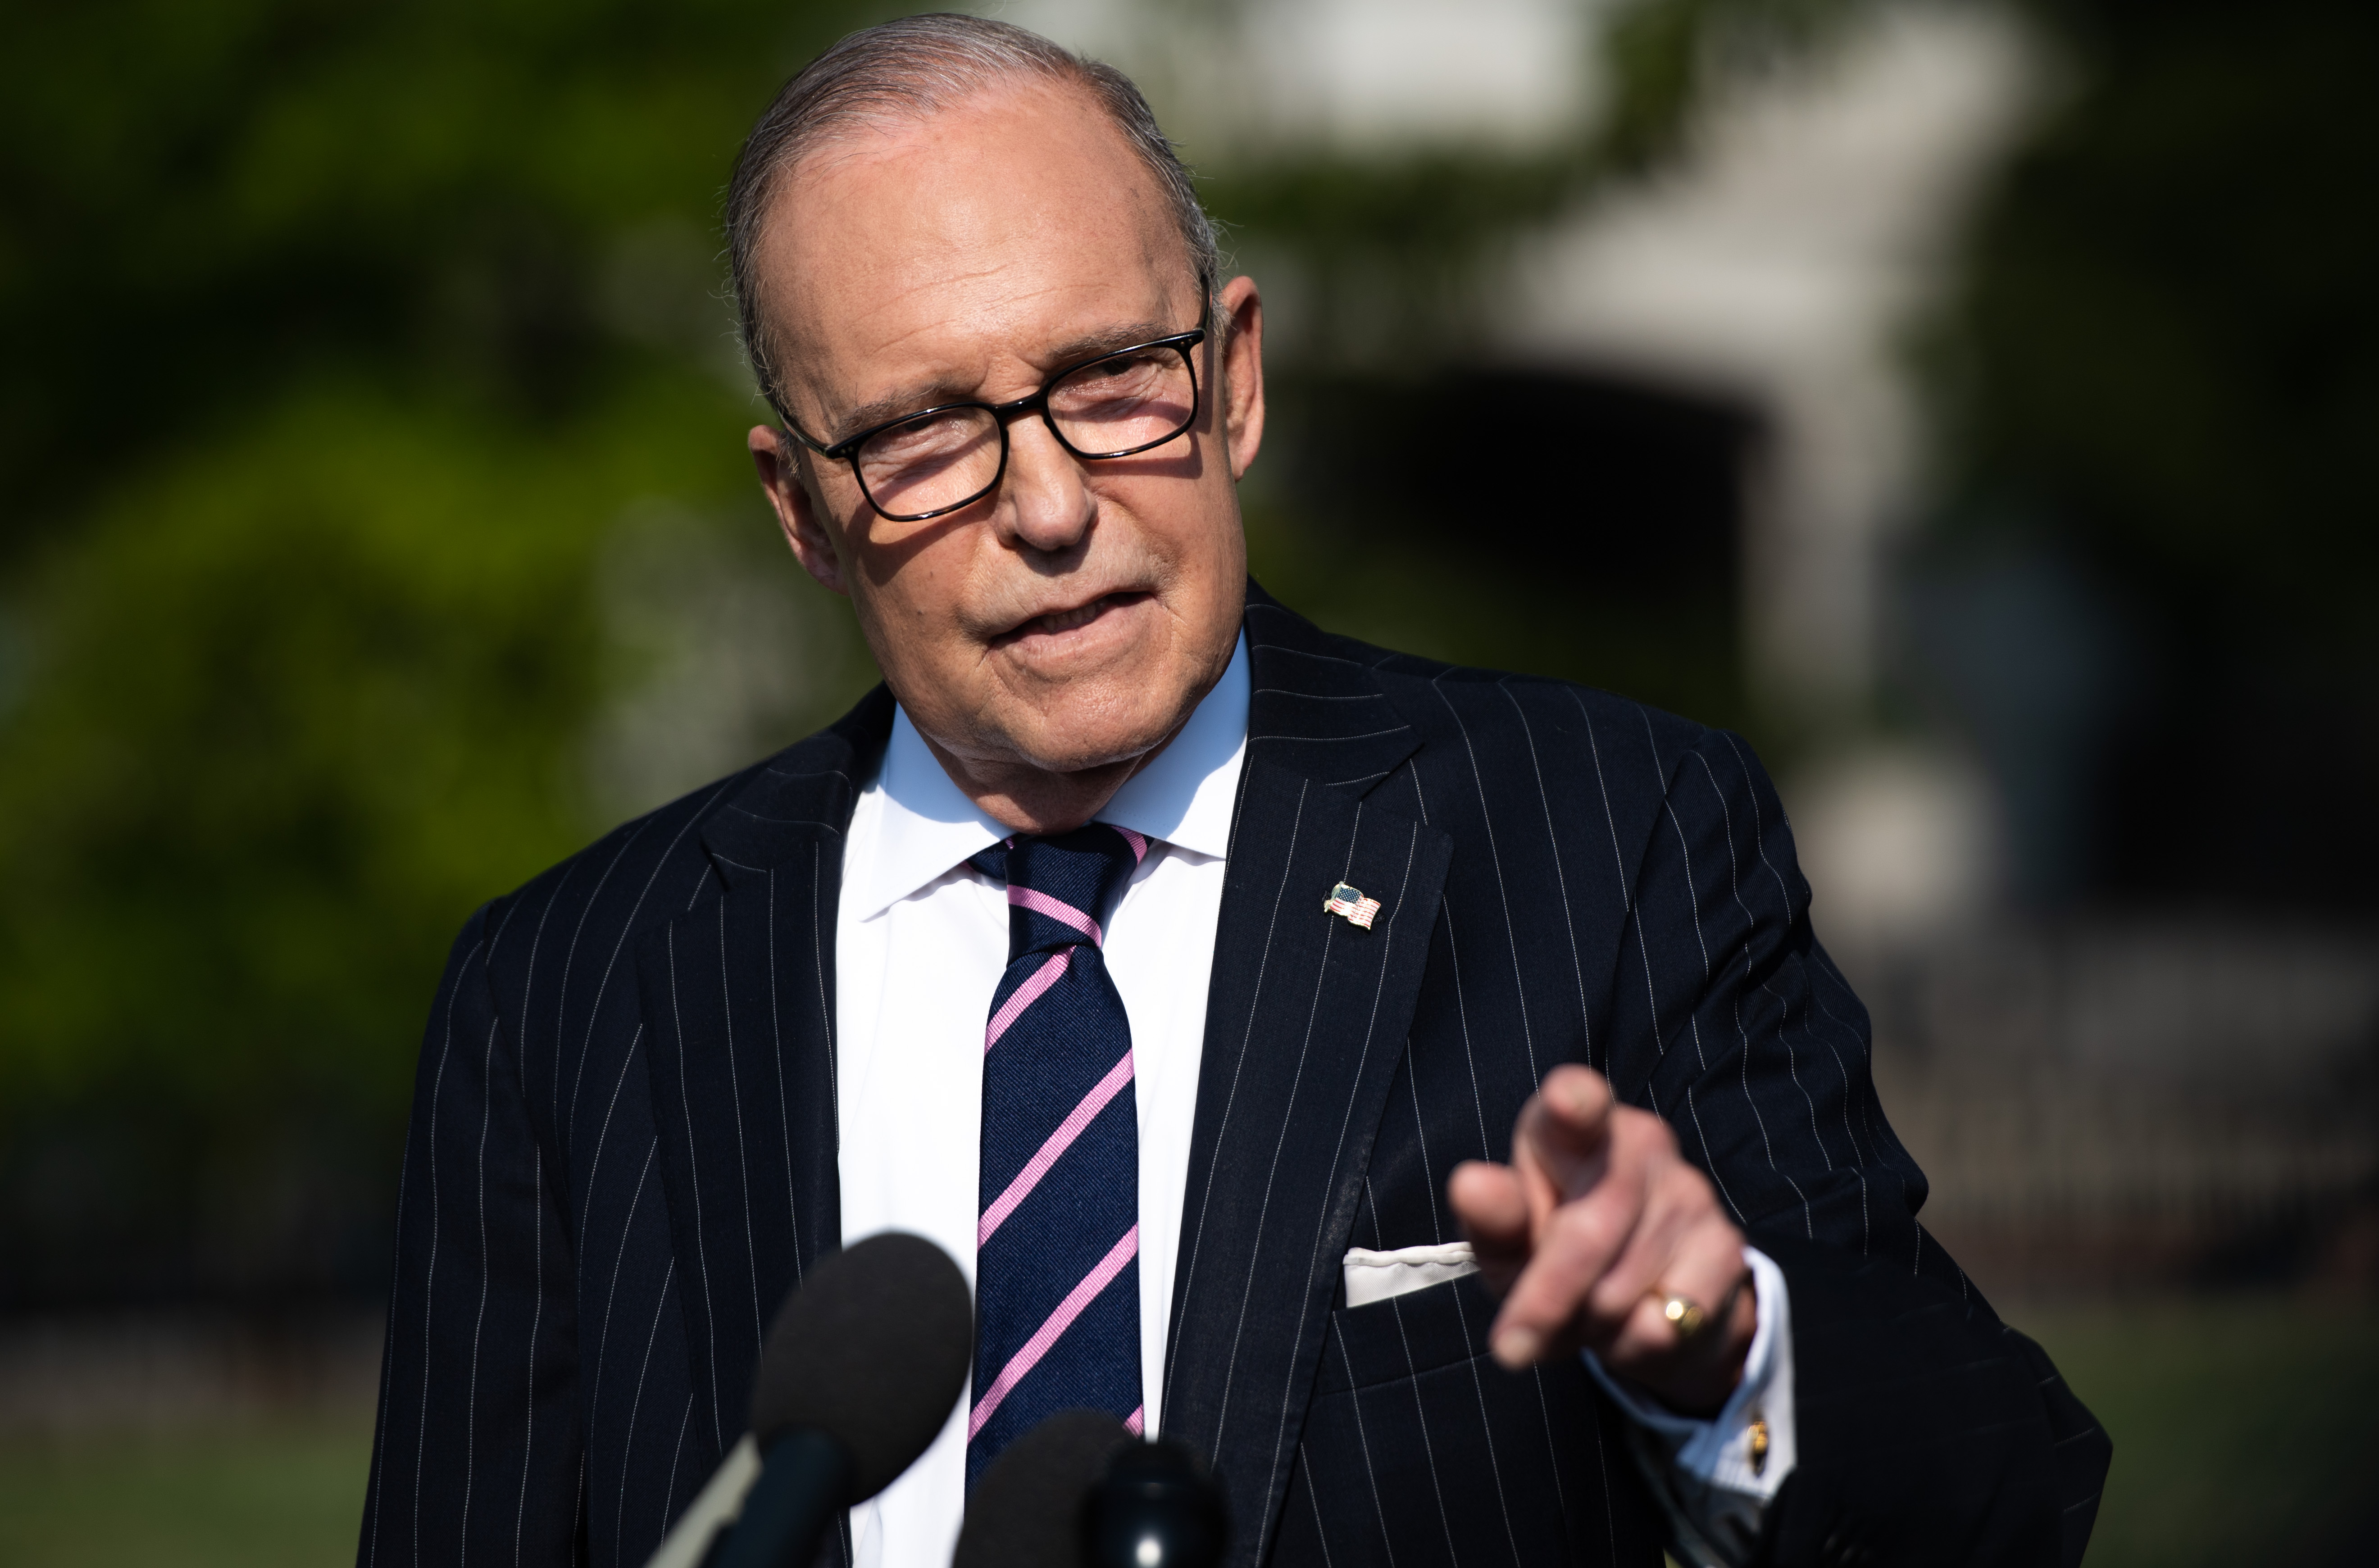 Trump 'Looking at' Potential Purchase of Greenland, Kudlow Says